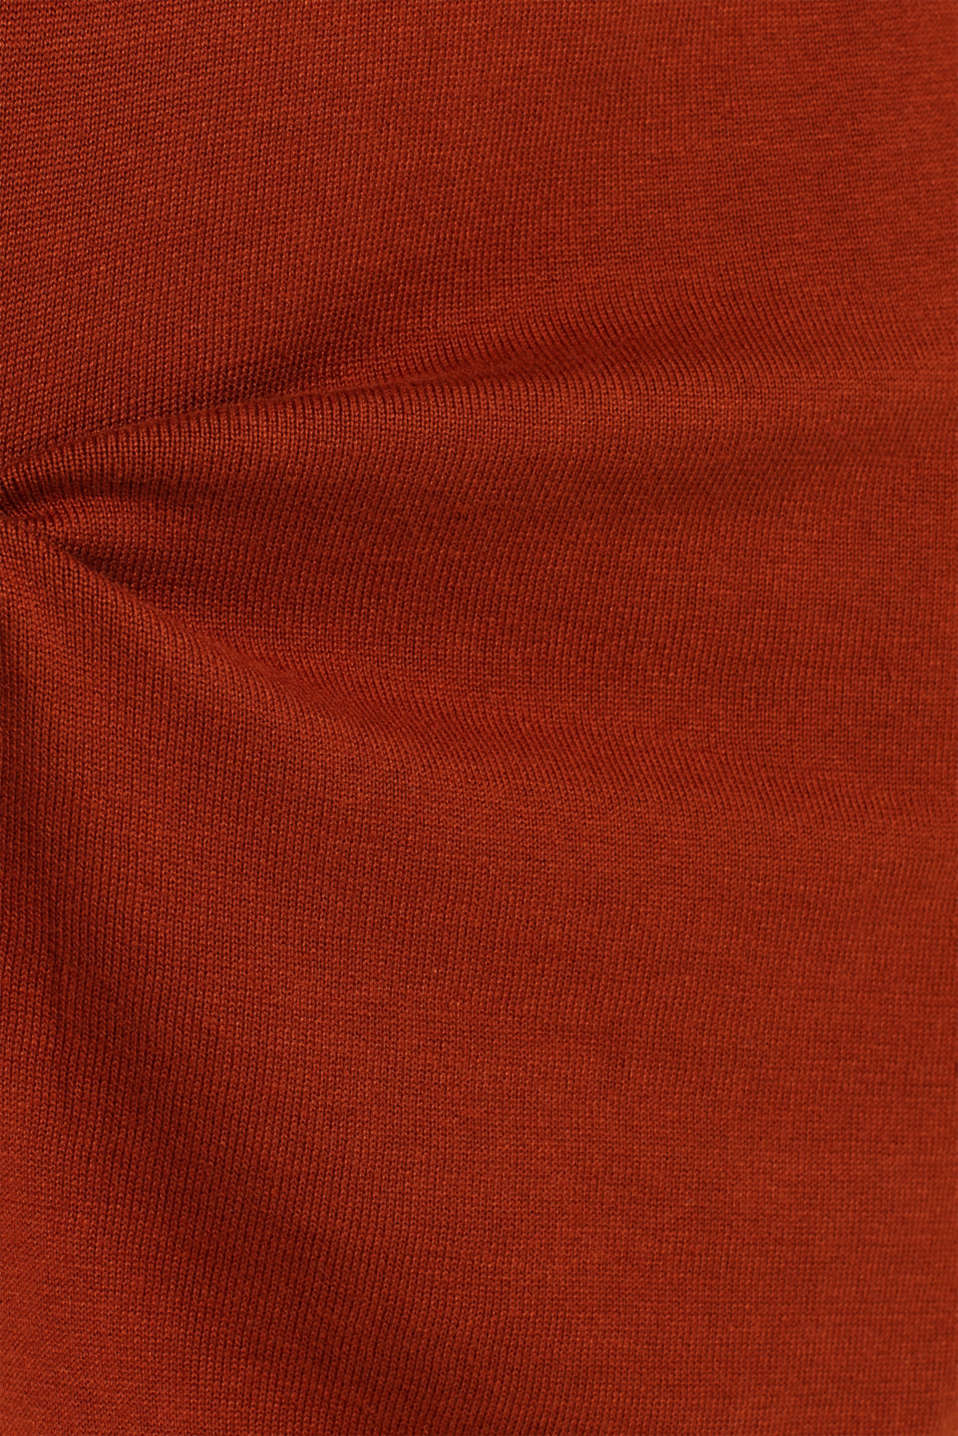 Basic knit dress with rolled edge, RUST BROWN 5, detail image number 5